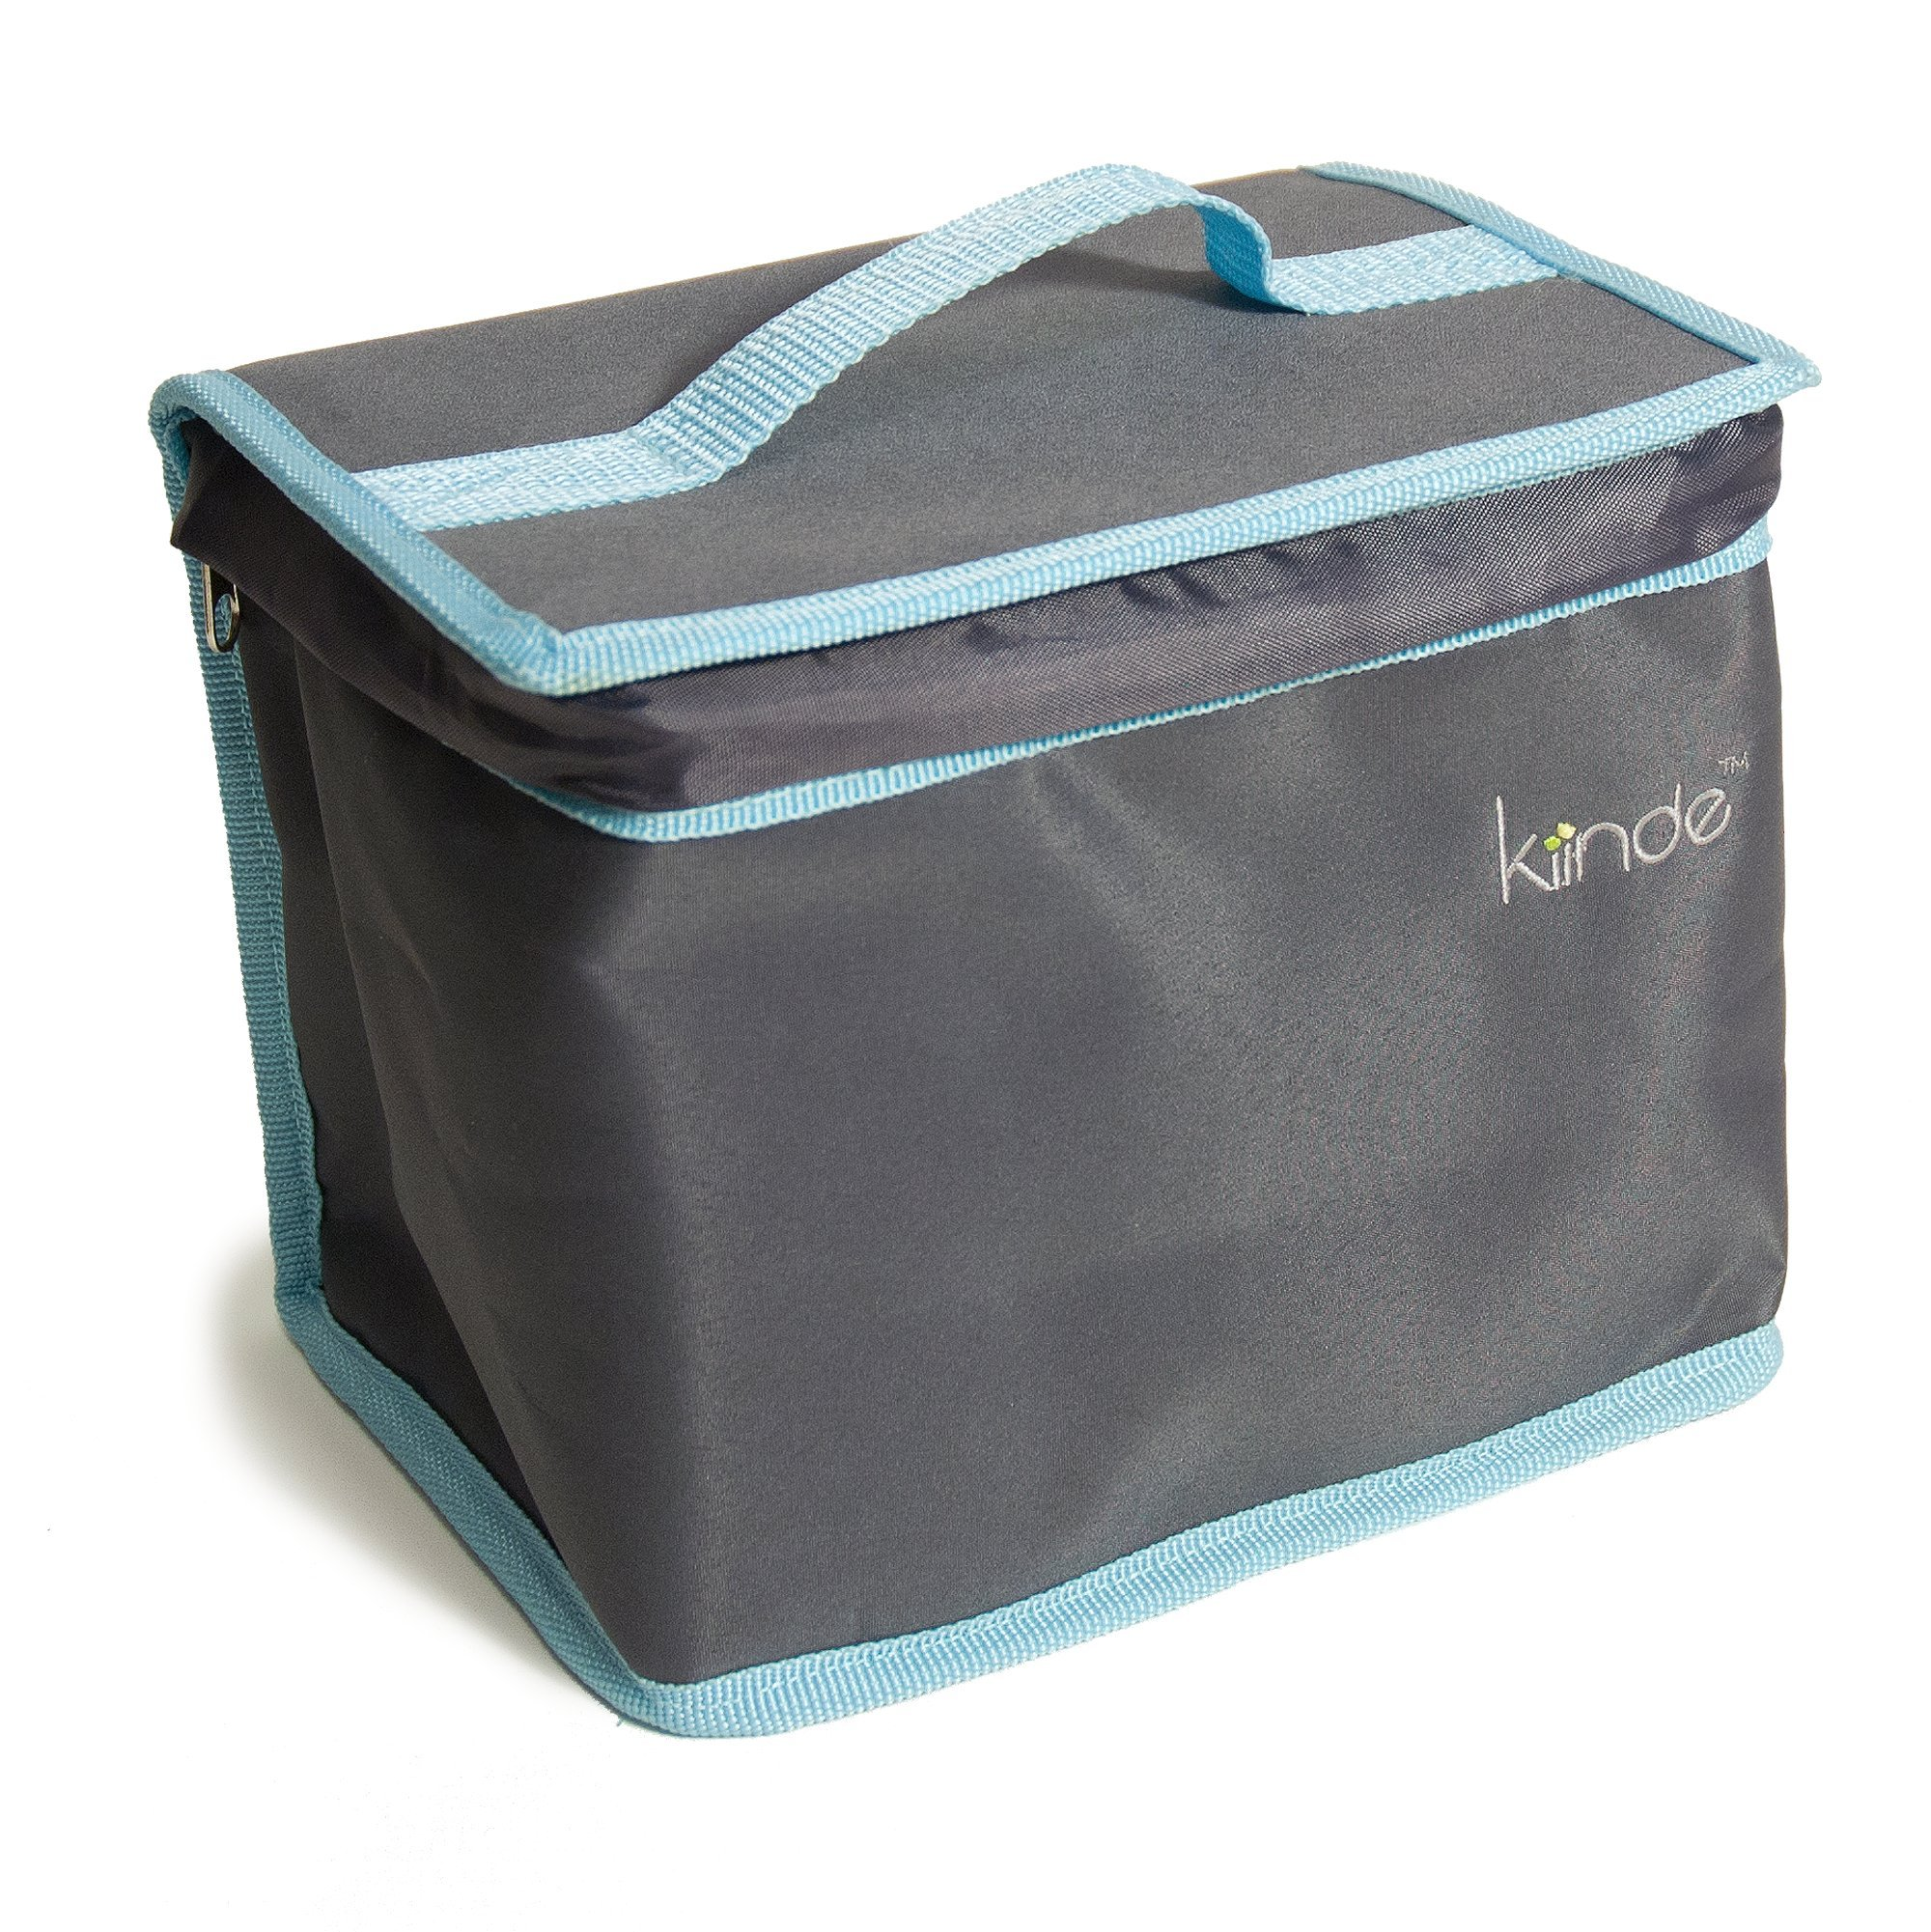 Kiinde Twist Breast Milk Storage Bag and Ice Pack Kit for Breastfeeding Moms - Gray by Kiinde